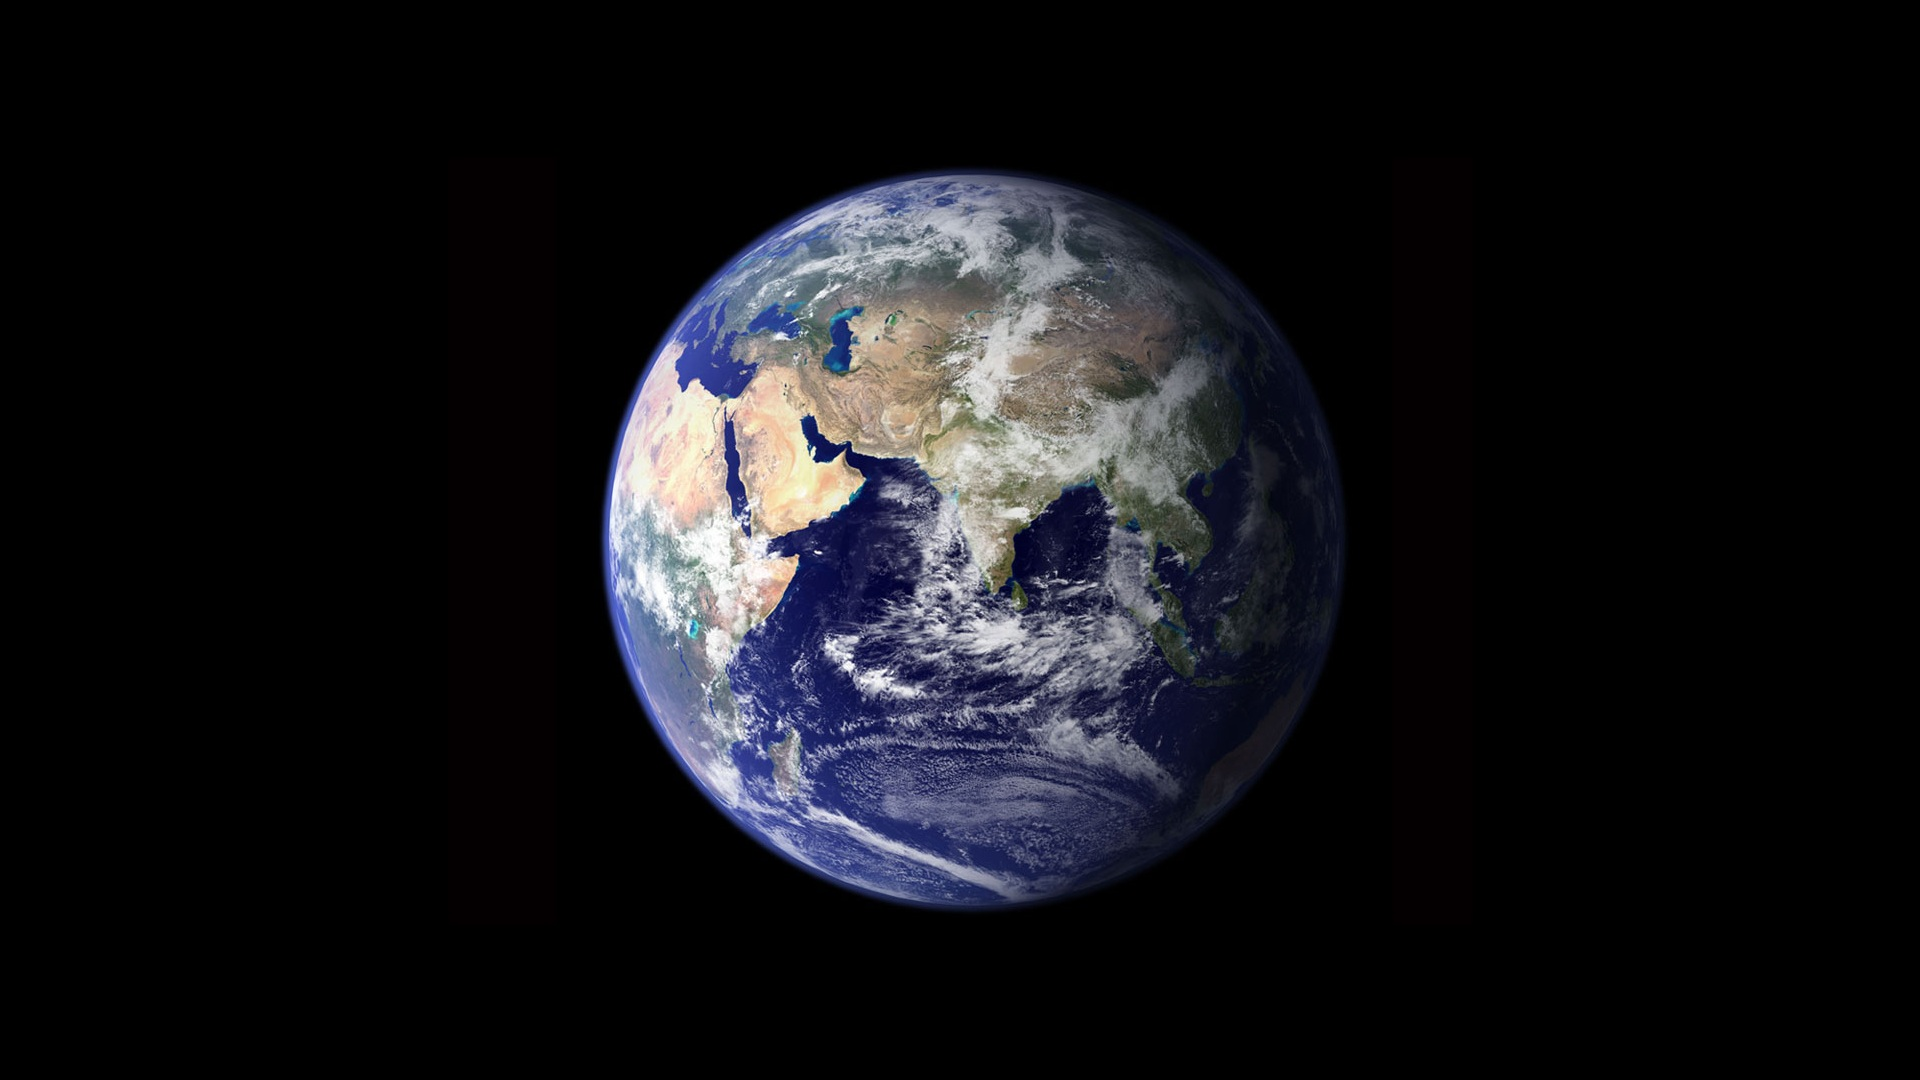 Earth From Space Screensaver